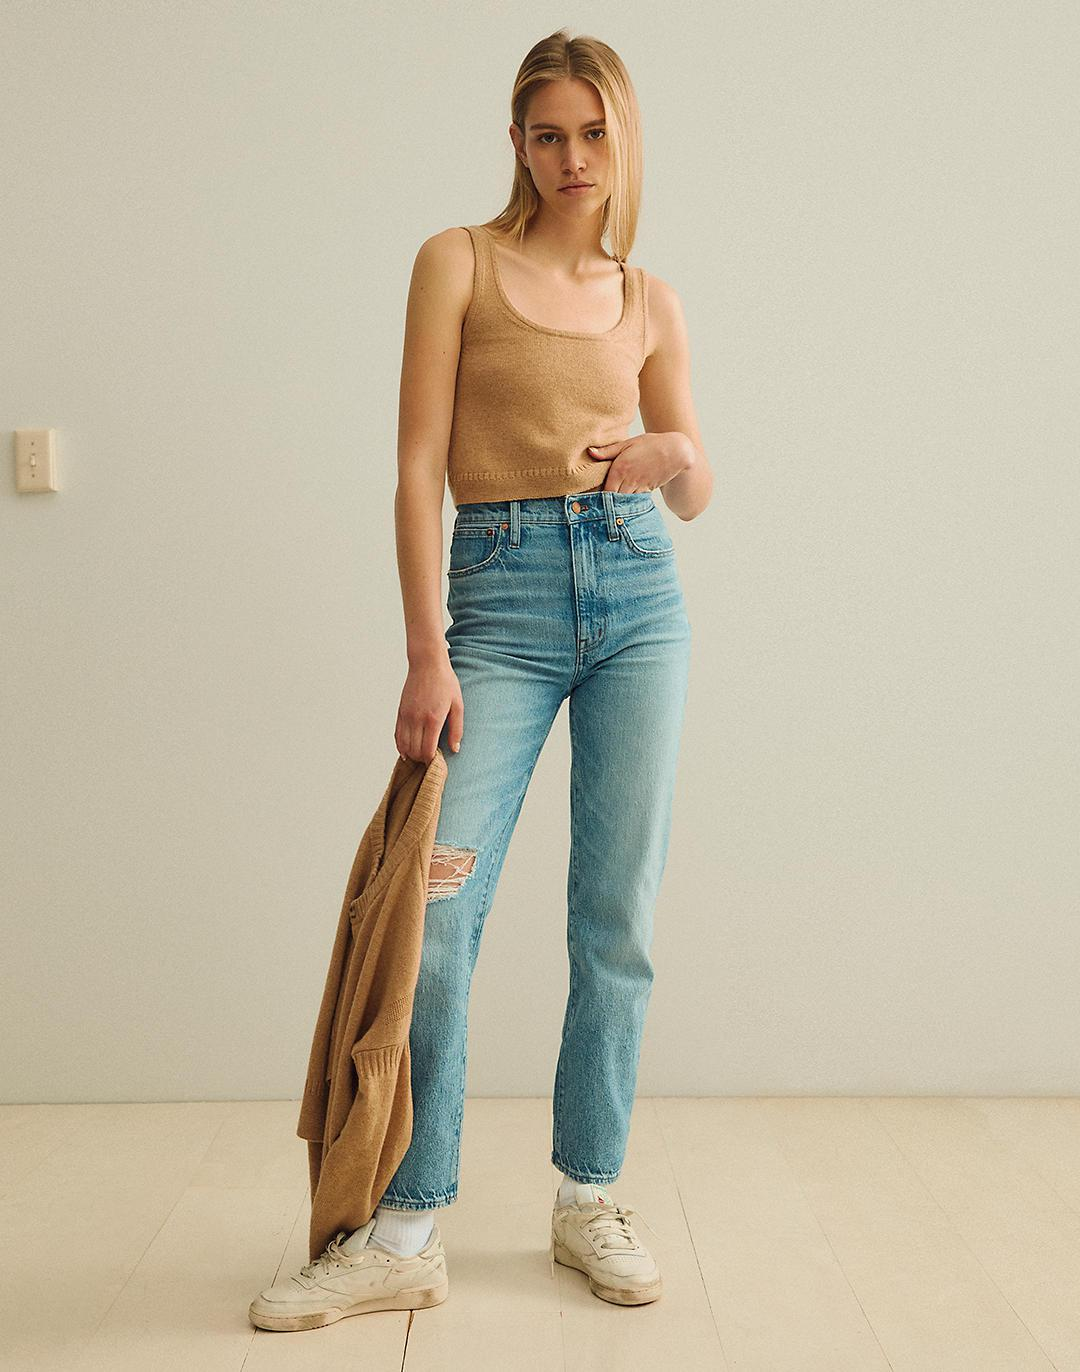 The Tall Perfect Vintage Straight Jean in Reinhart Wash